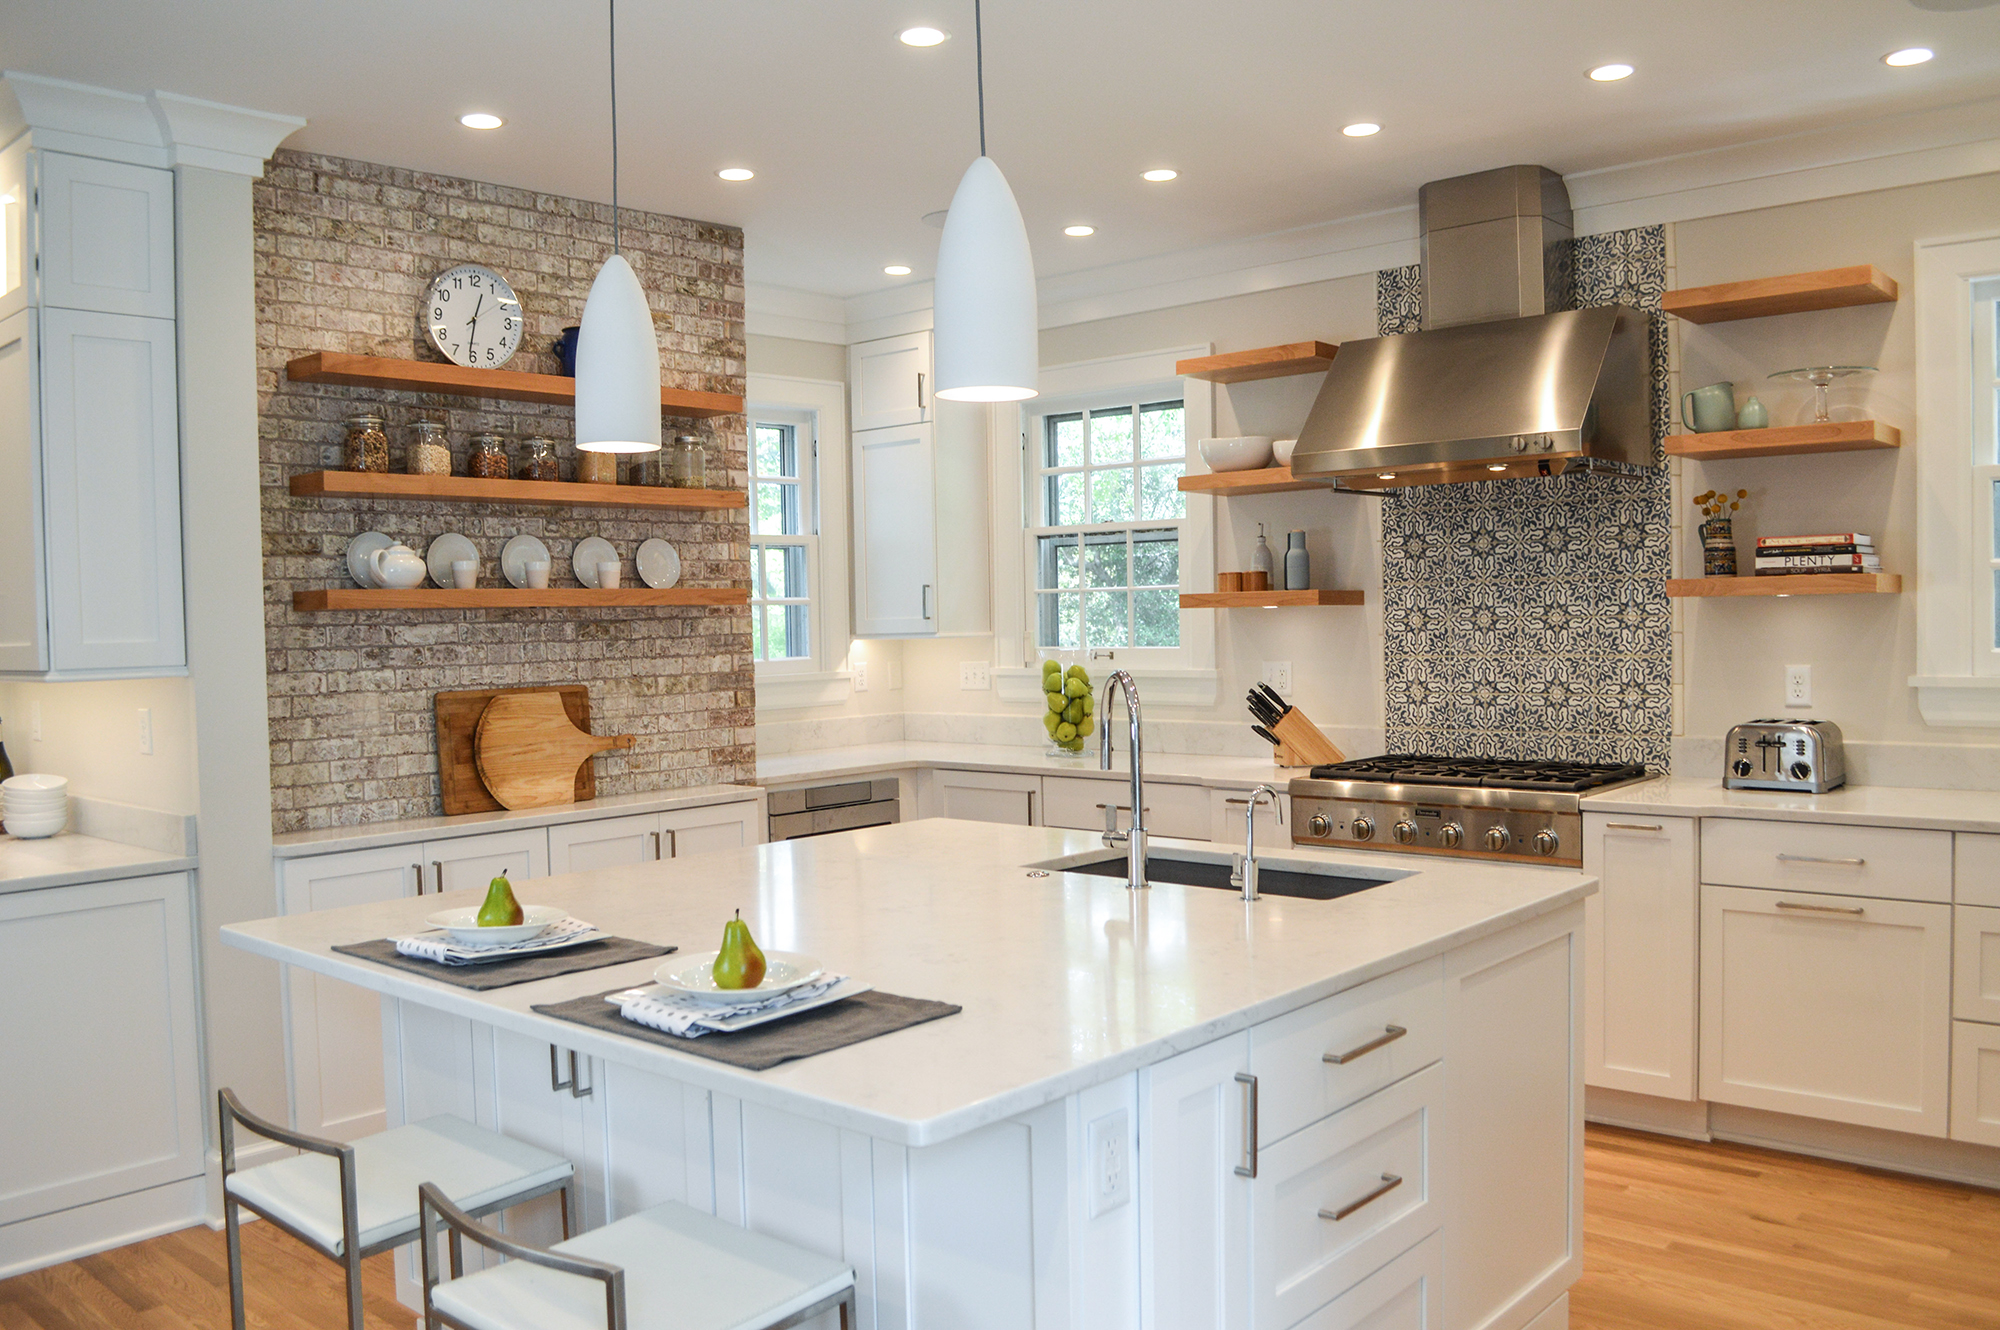 - Studio 76 Kitchens & Baths Awarded Best Of Houzz 2018 Studio 76